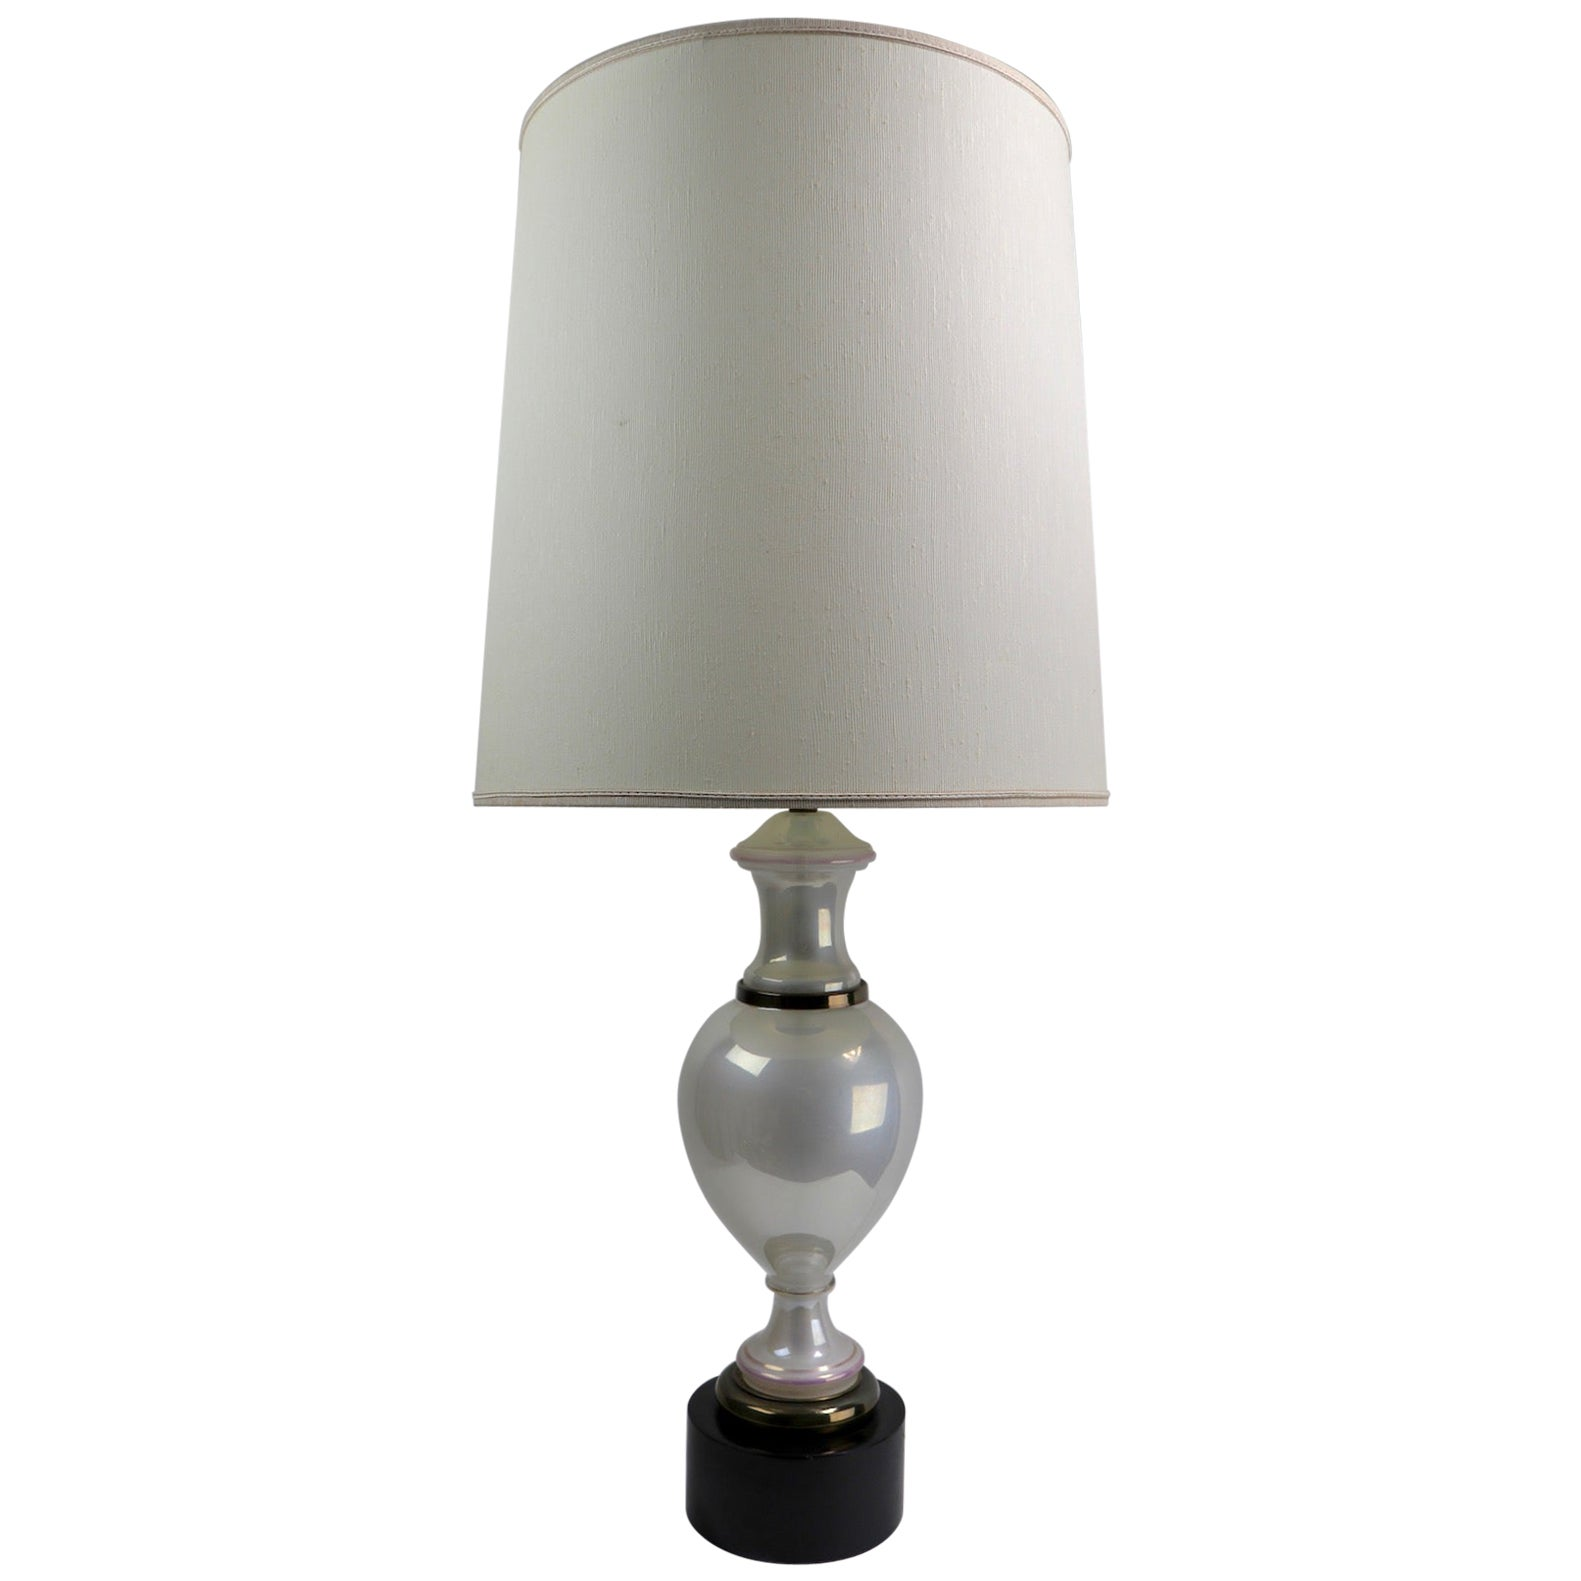 Pearlized Opaline Glass Table Lamp Attributed to Paul Hanson